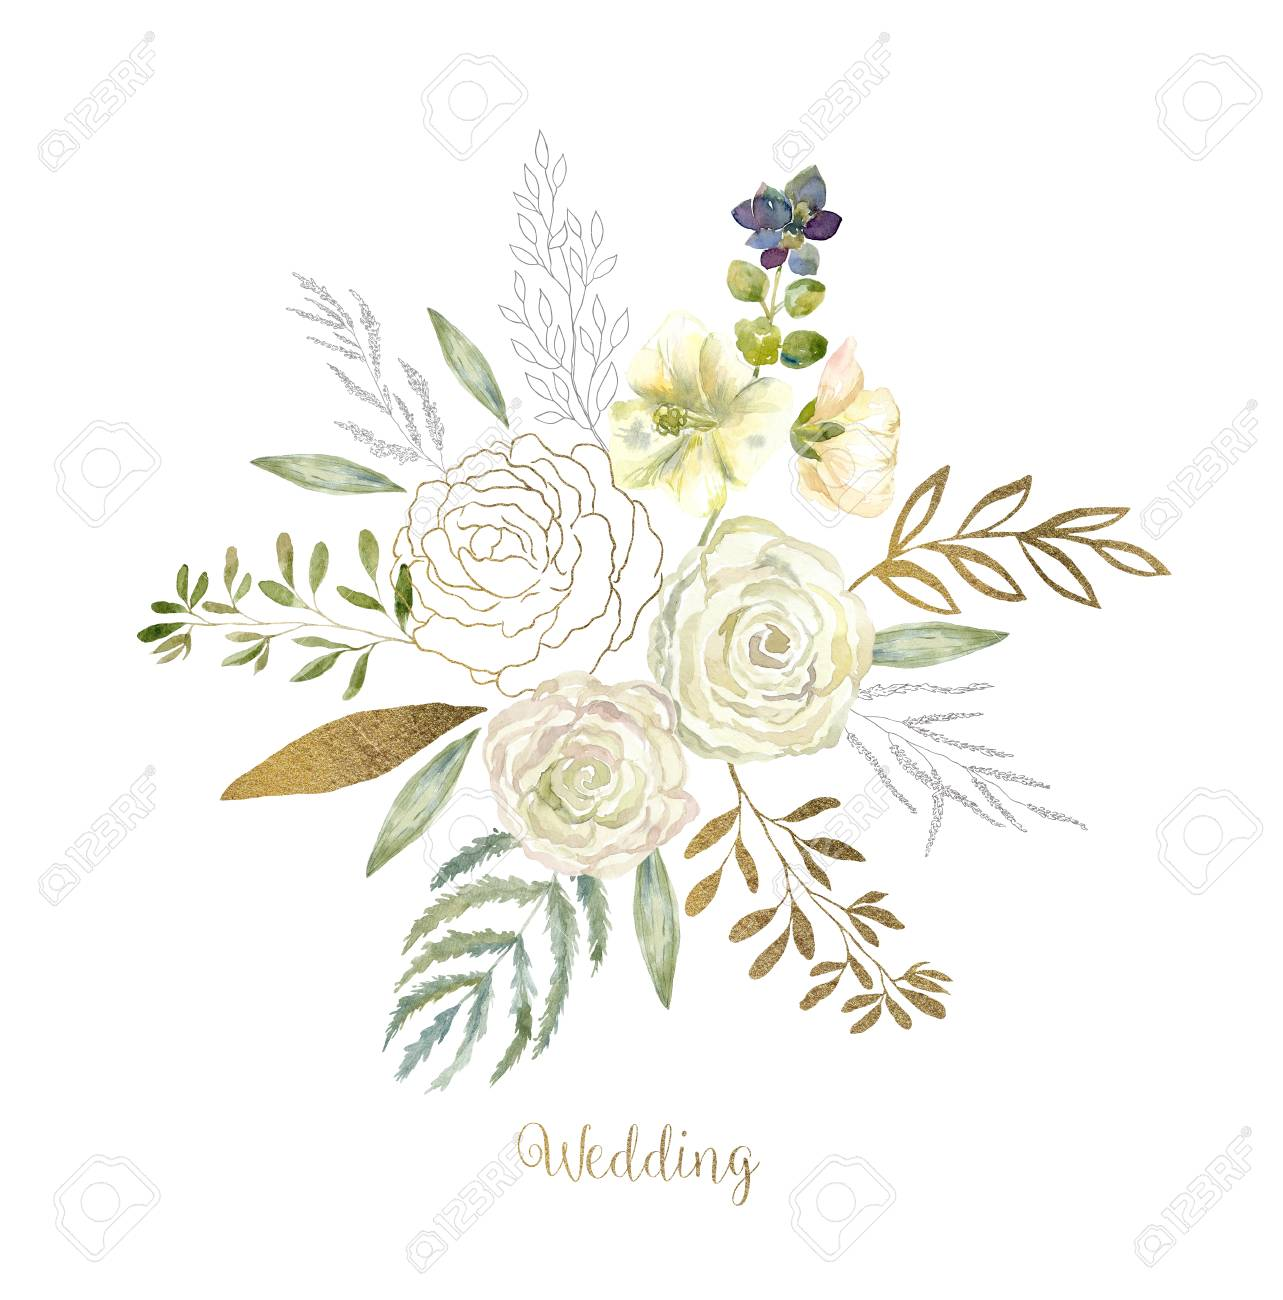 Watercolor Art With Fresh Flower Bouquet For Wedding Floral Stock Photo Picture And Royalty Free Image Image 111191473